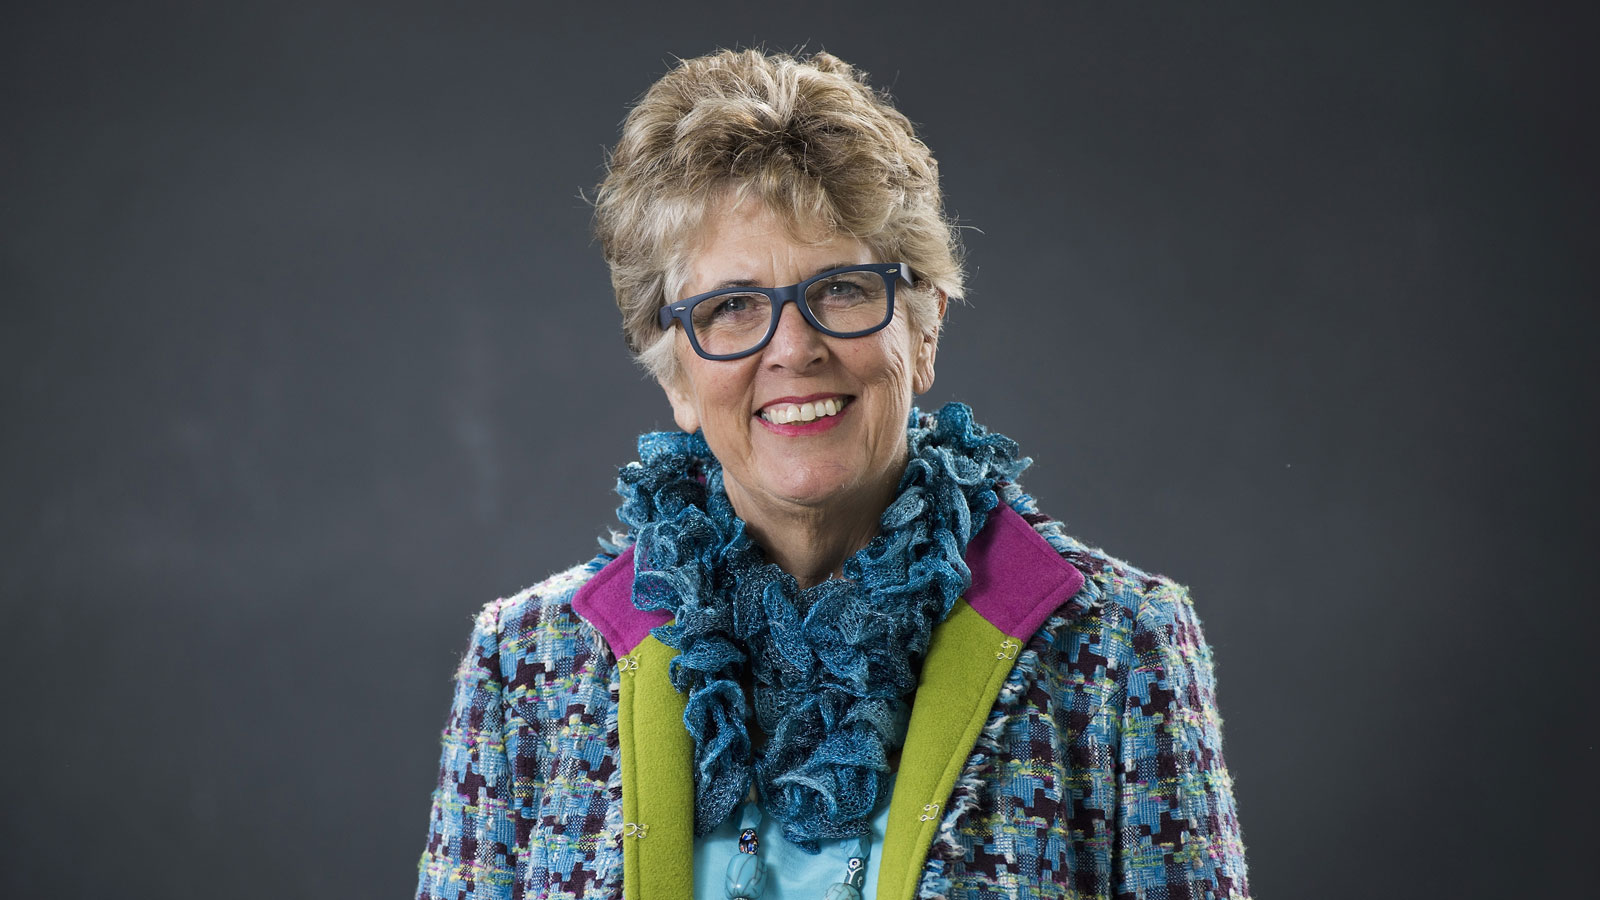 Prue Leith Accidentally Tweeted the Winner of the 'Great British Bake Off'